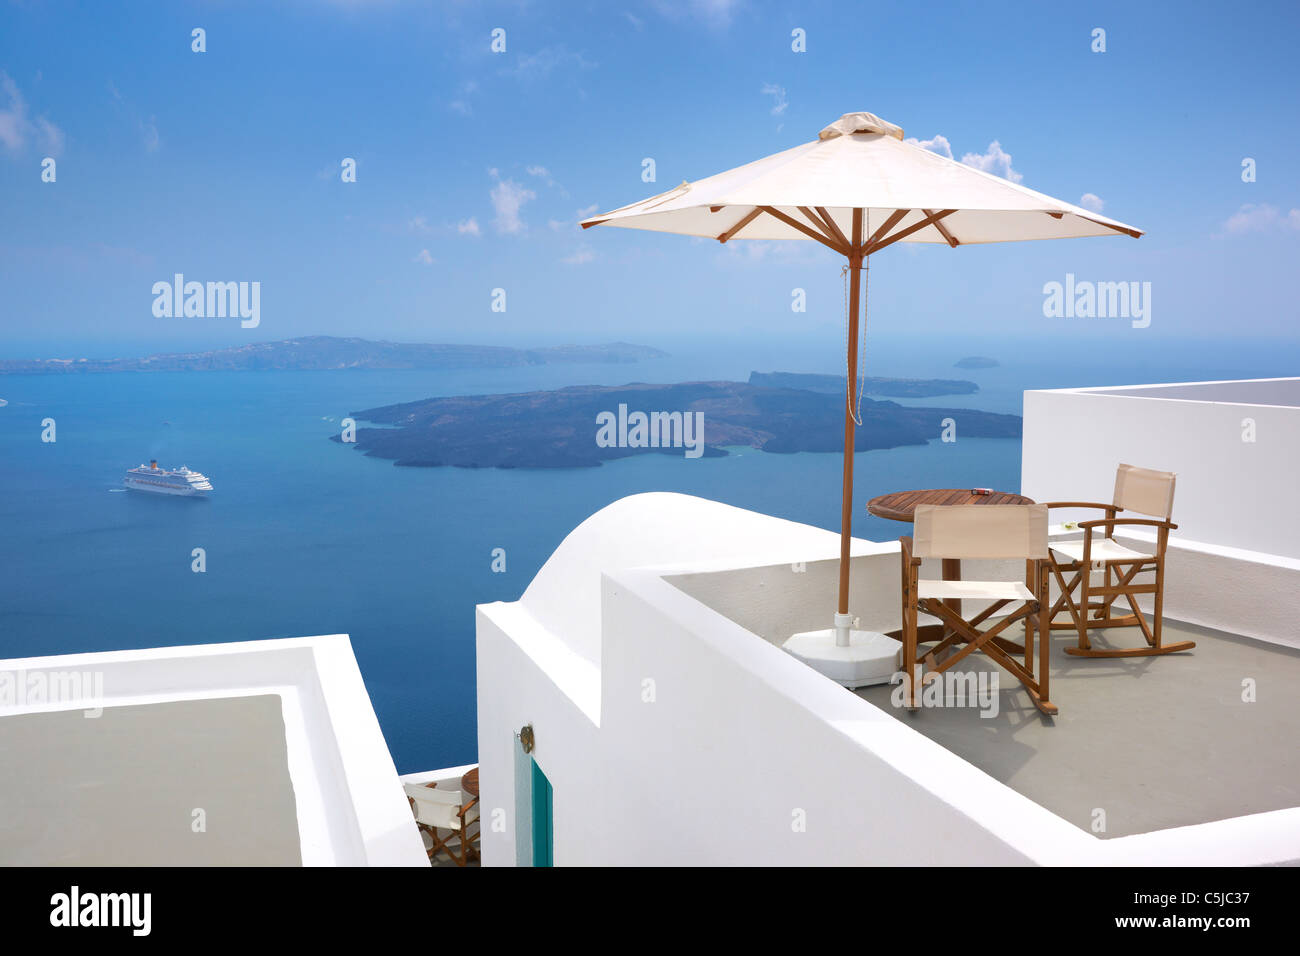 Thira (capital of Santorini) - terrace with deck chairs, sun umbrella and blue sea in the background, Santorini - Stock Image